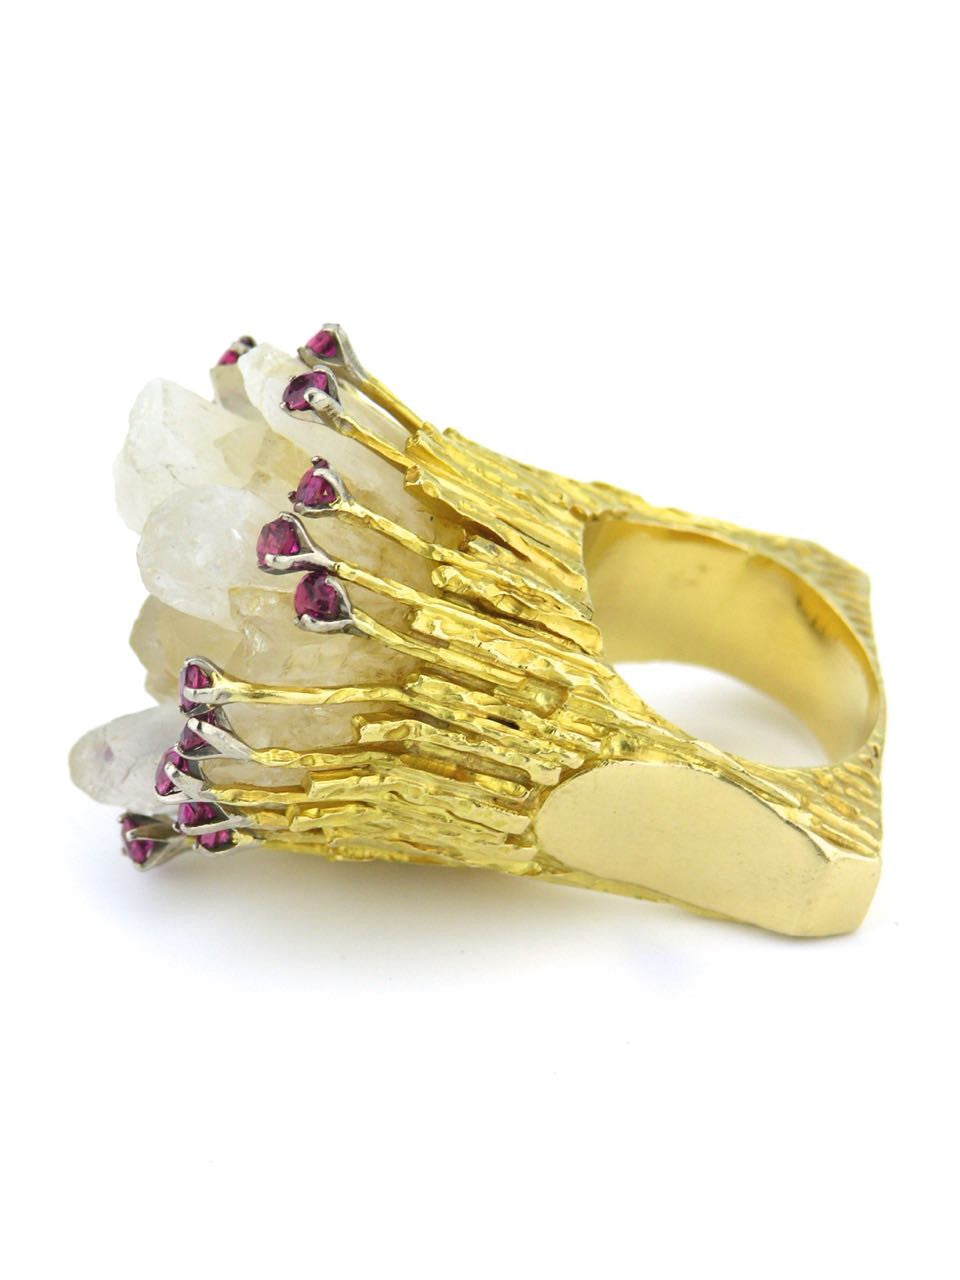 Australian large gold, quartz and ruby organic 70's knuckleduster ring - Rob Bennett